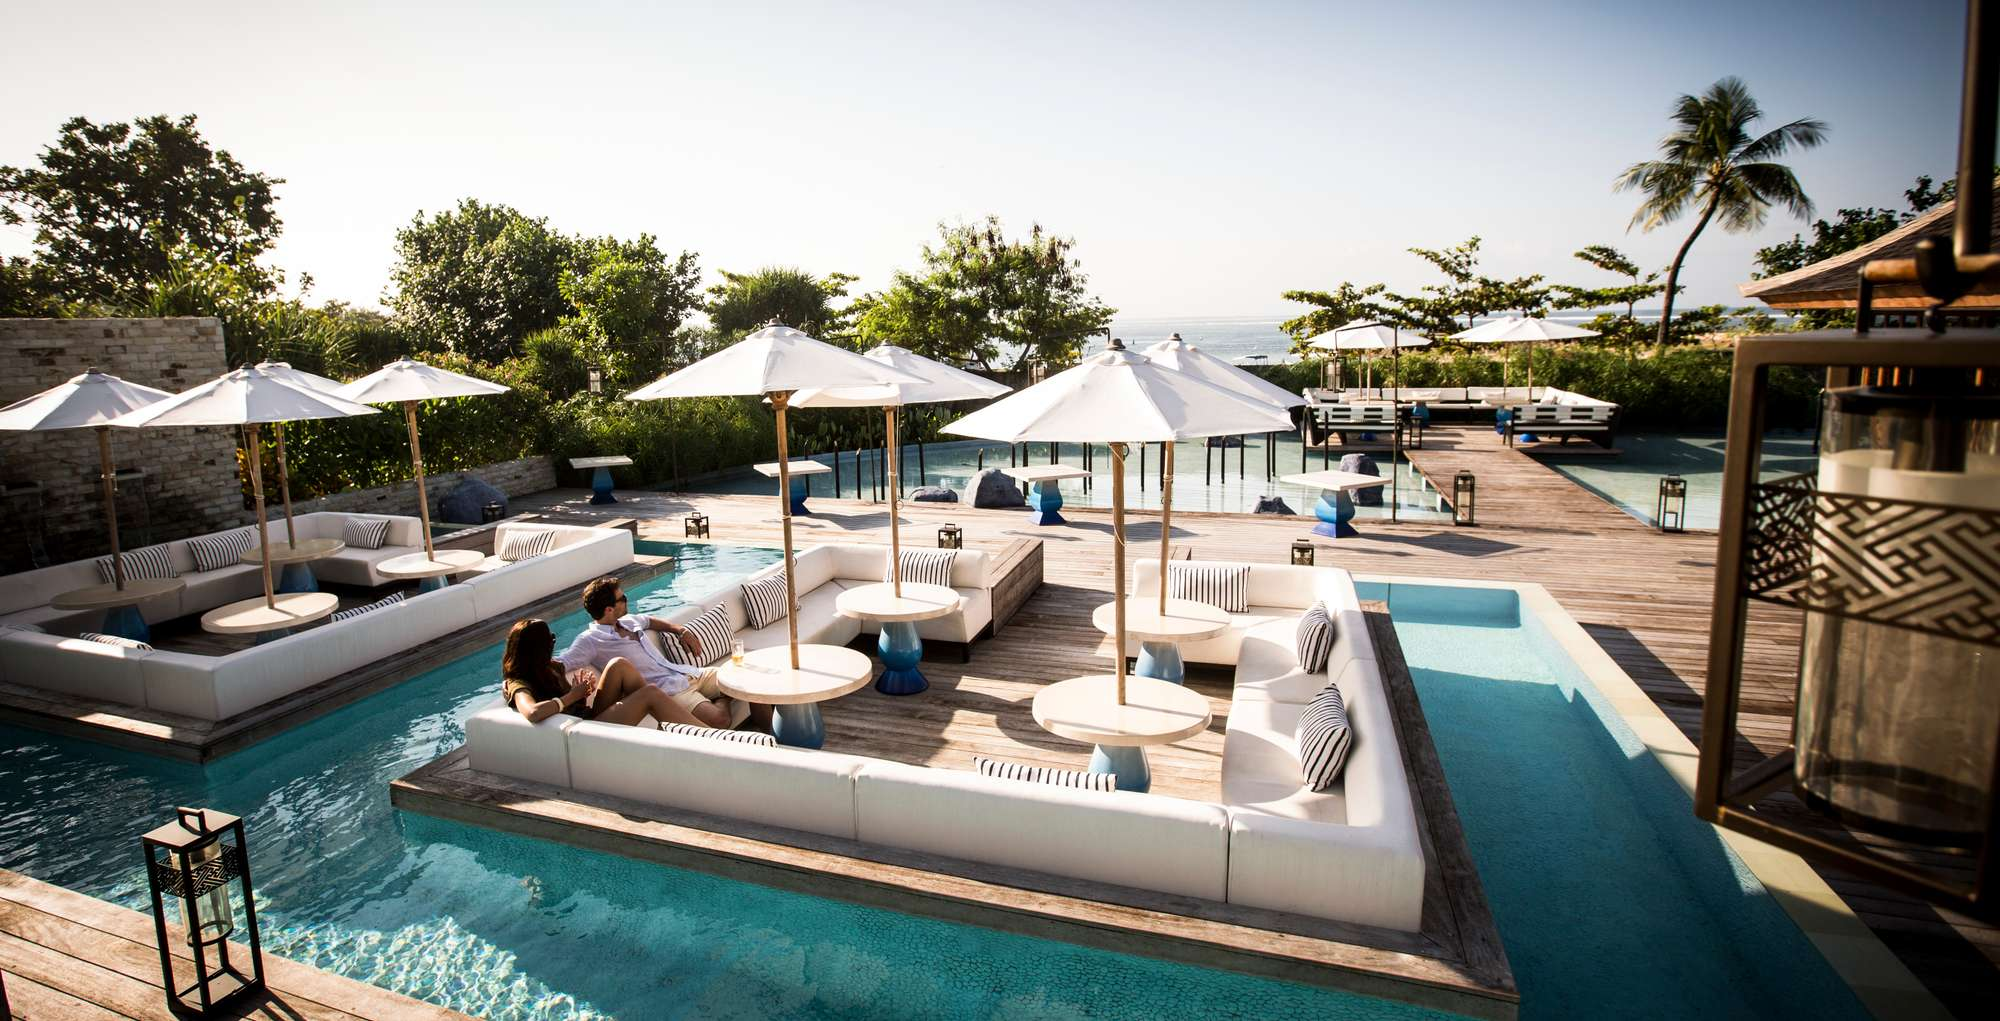 The Deck gourmet Lounge Bali Club Med